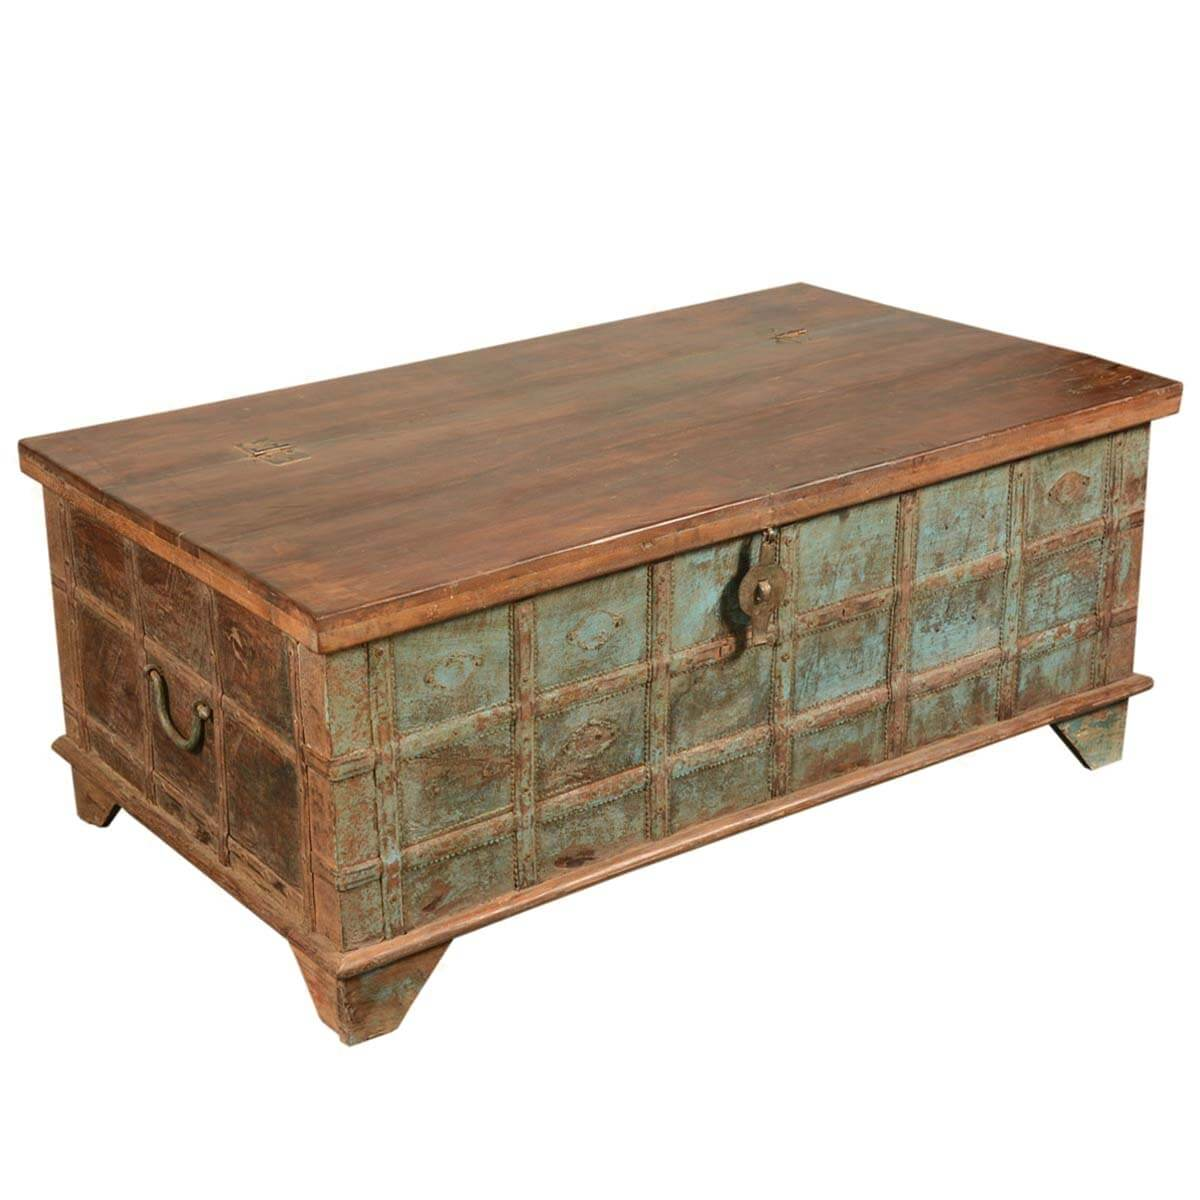 Captain 39 s stash reclaimed wood coffee table storage chest Coffee table chest with storage